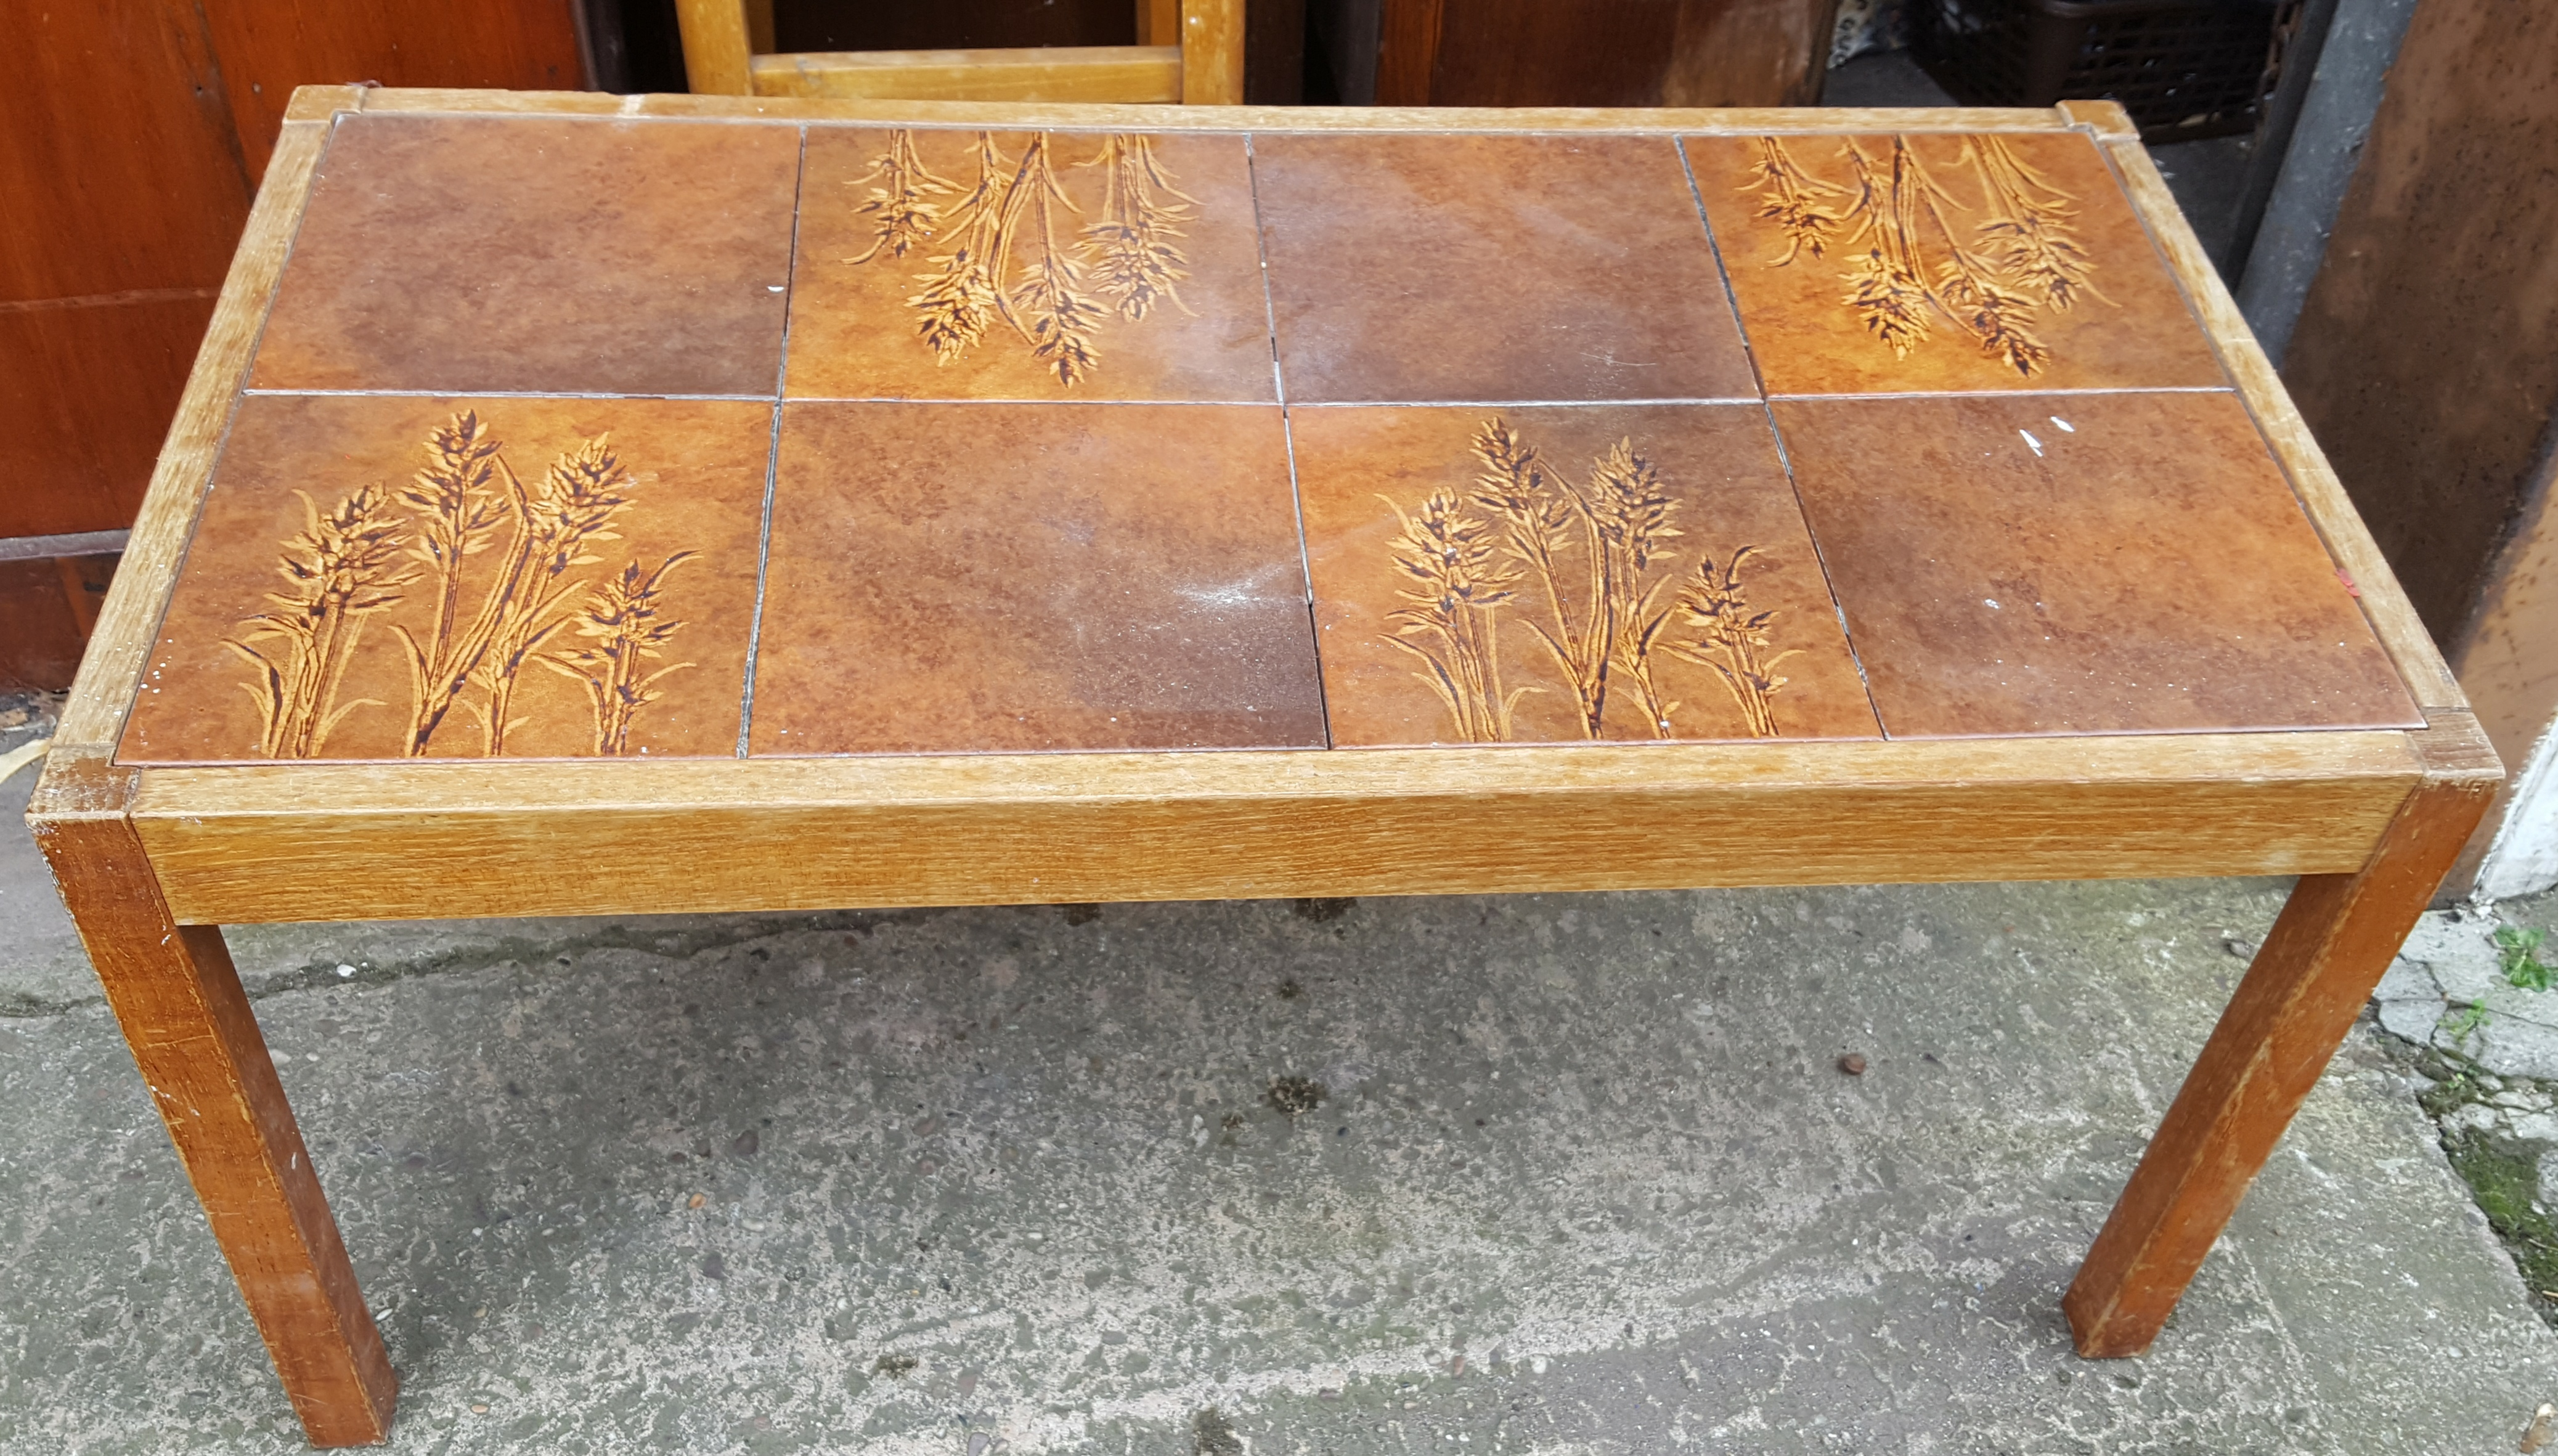 Lot 49 - Retro Vintage Tiled Coffee Table NO RESERVE